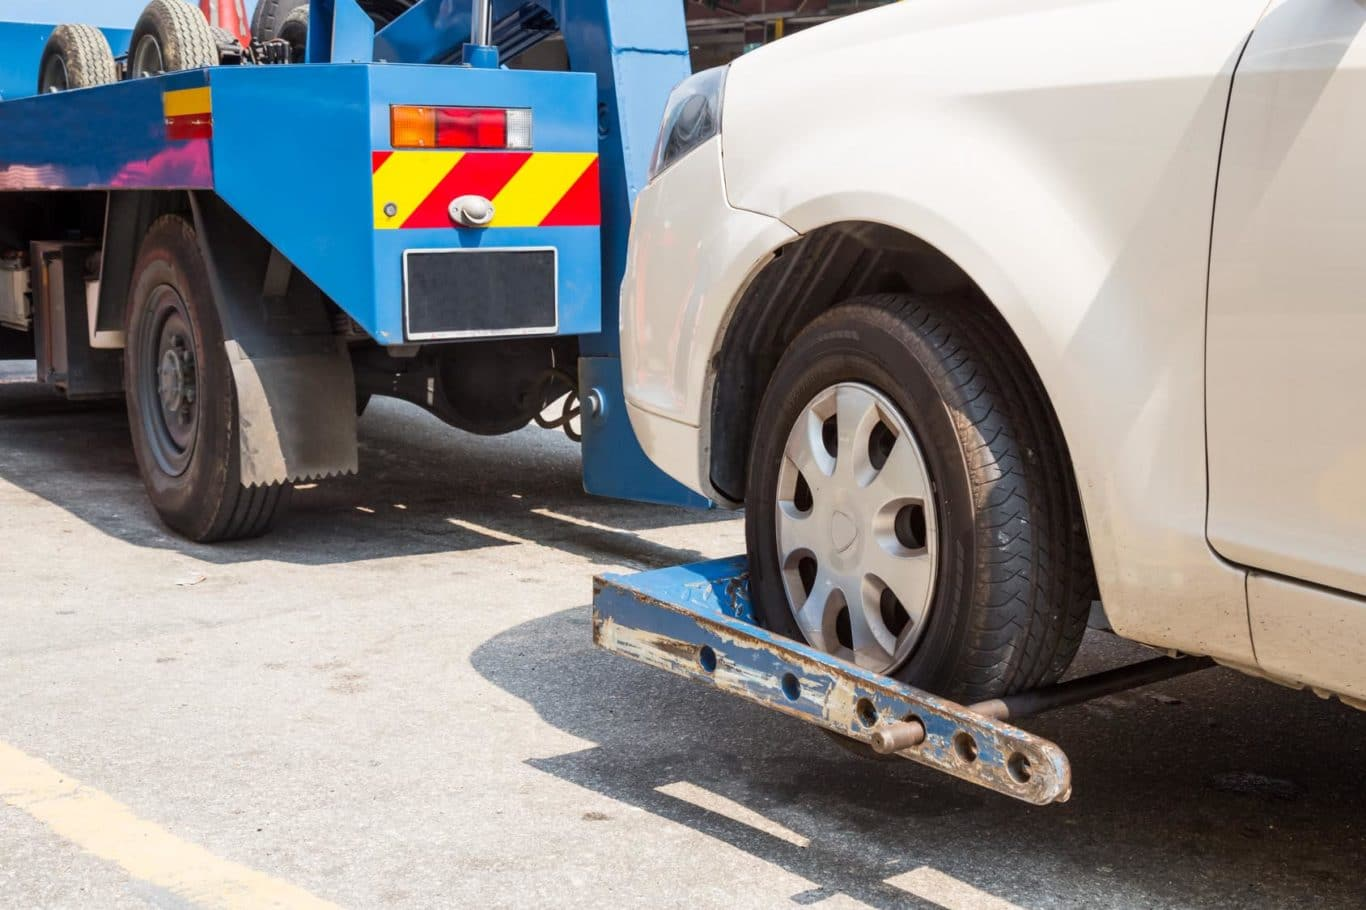 Curravanish expert Car Towing services